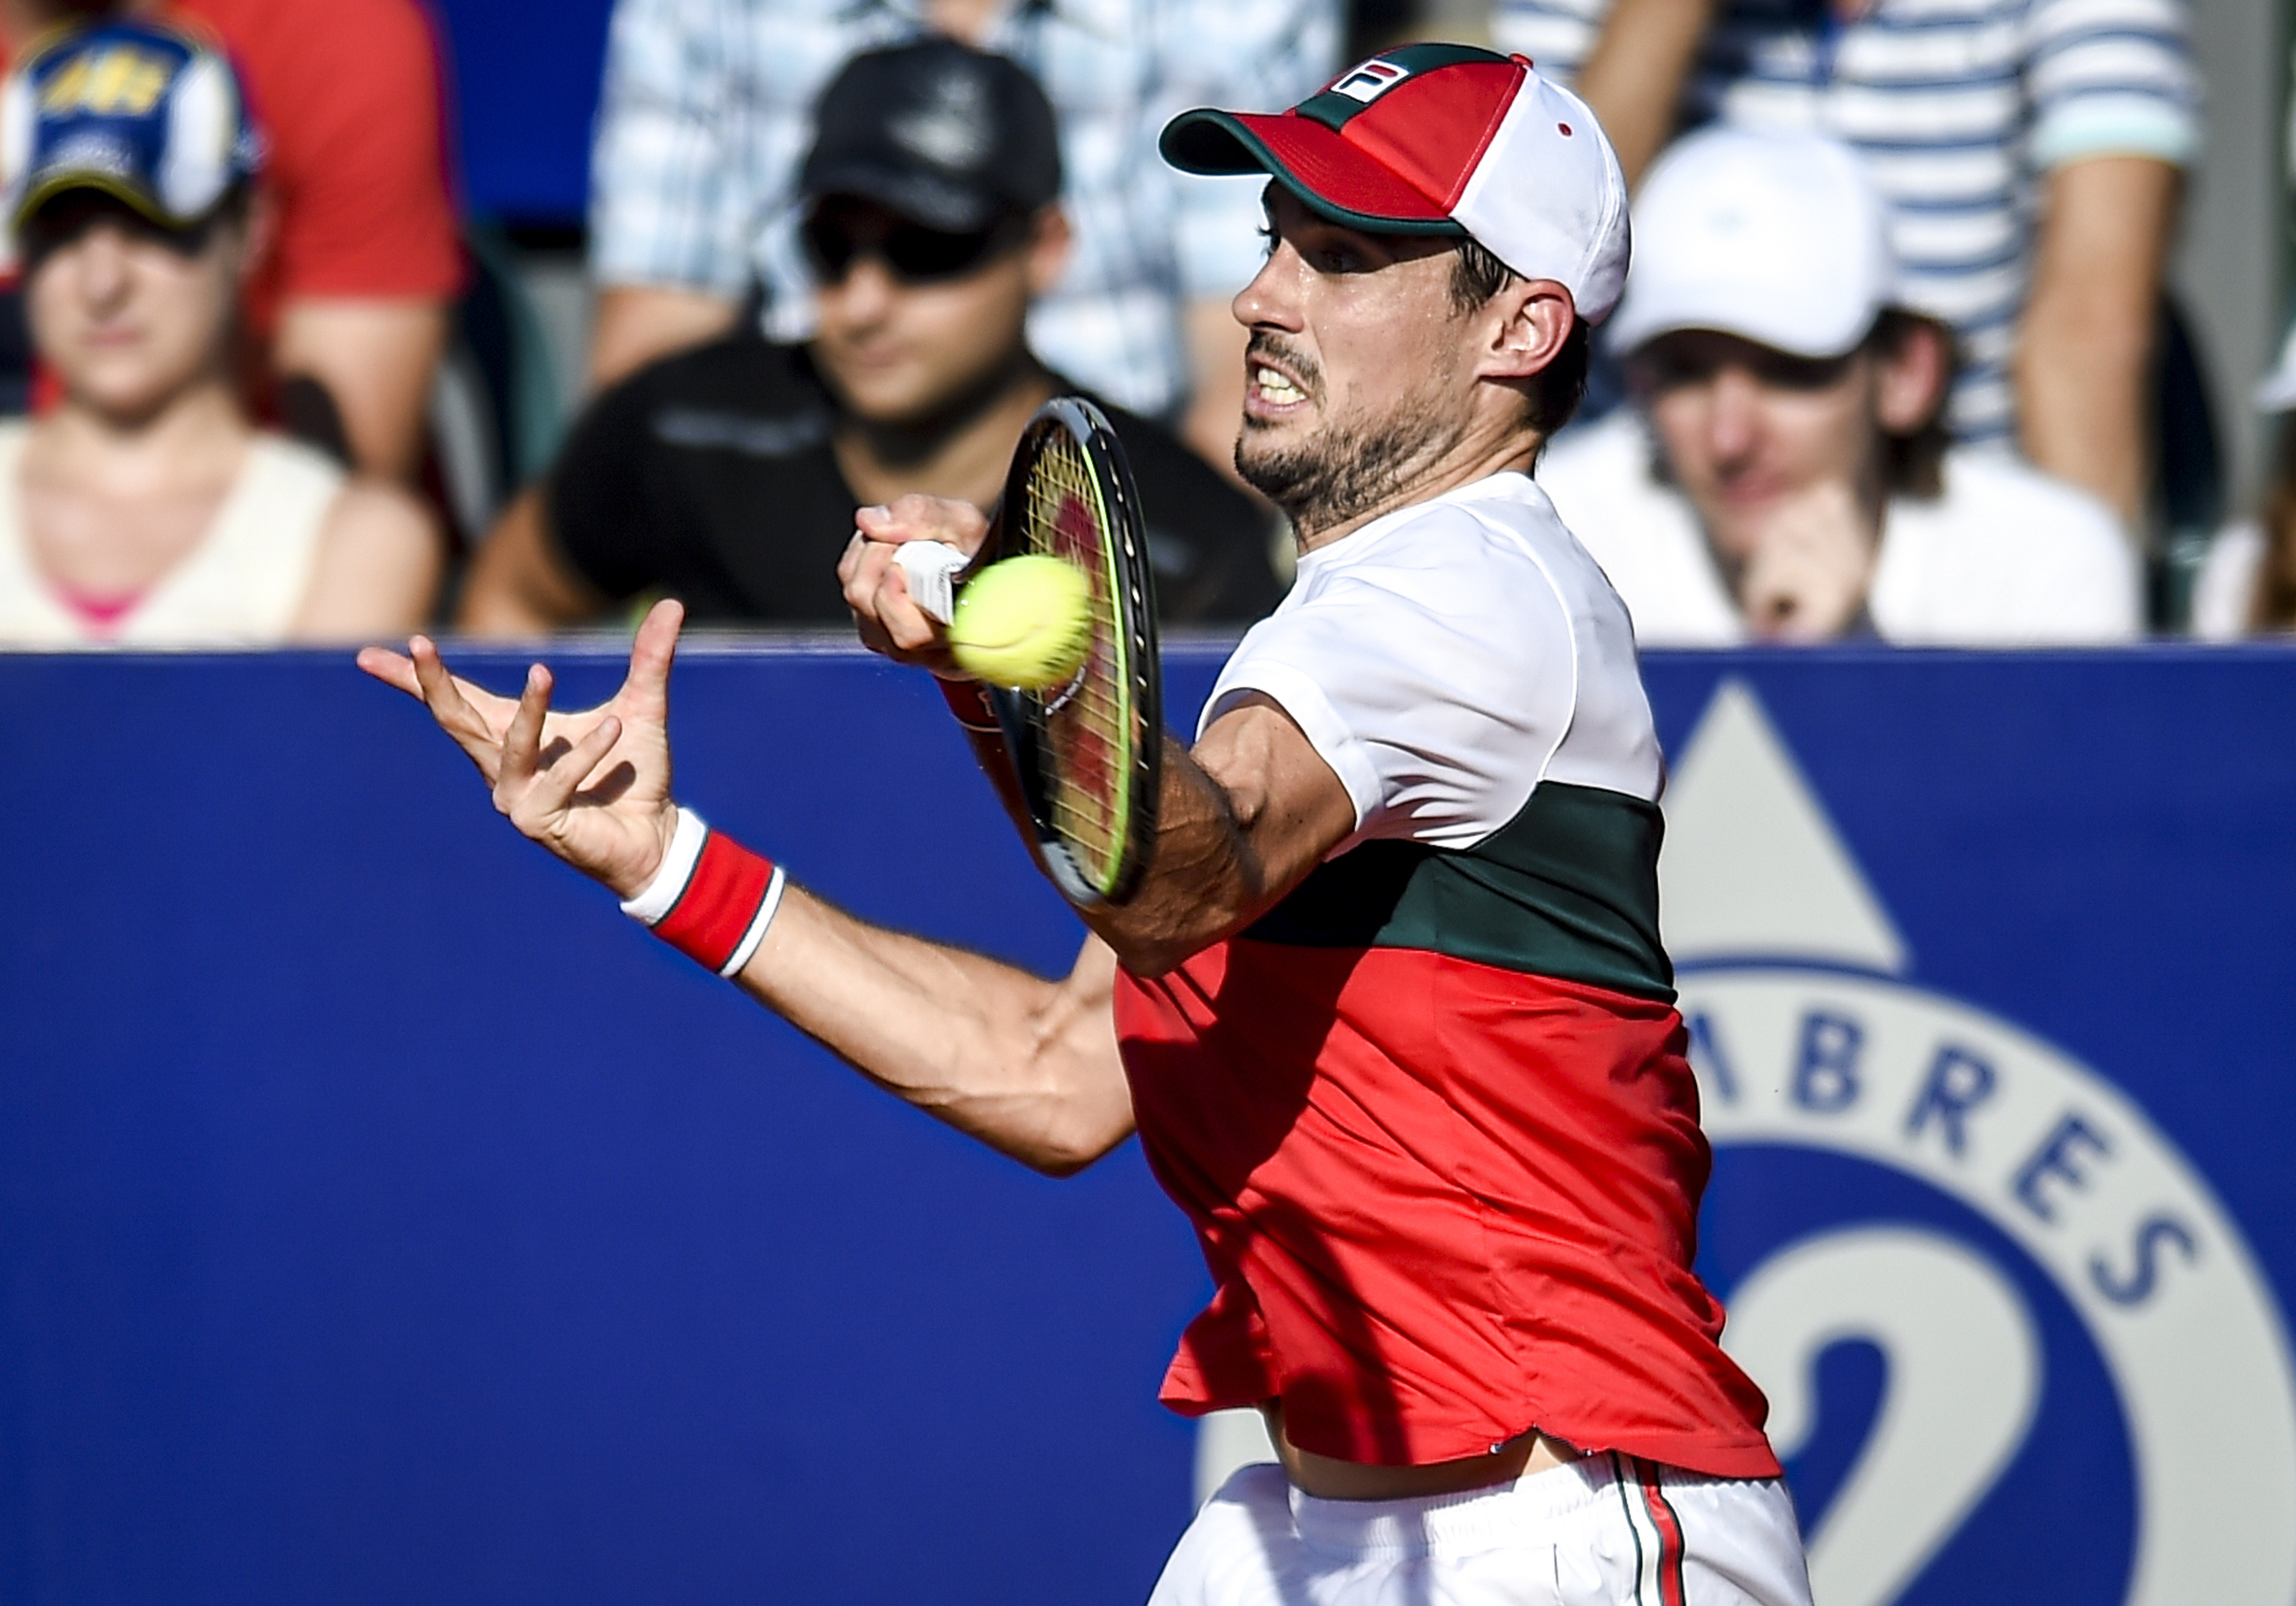 ATP Buenos Aires Argentina Open - Day 5